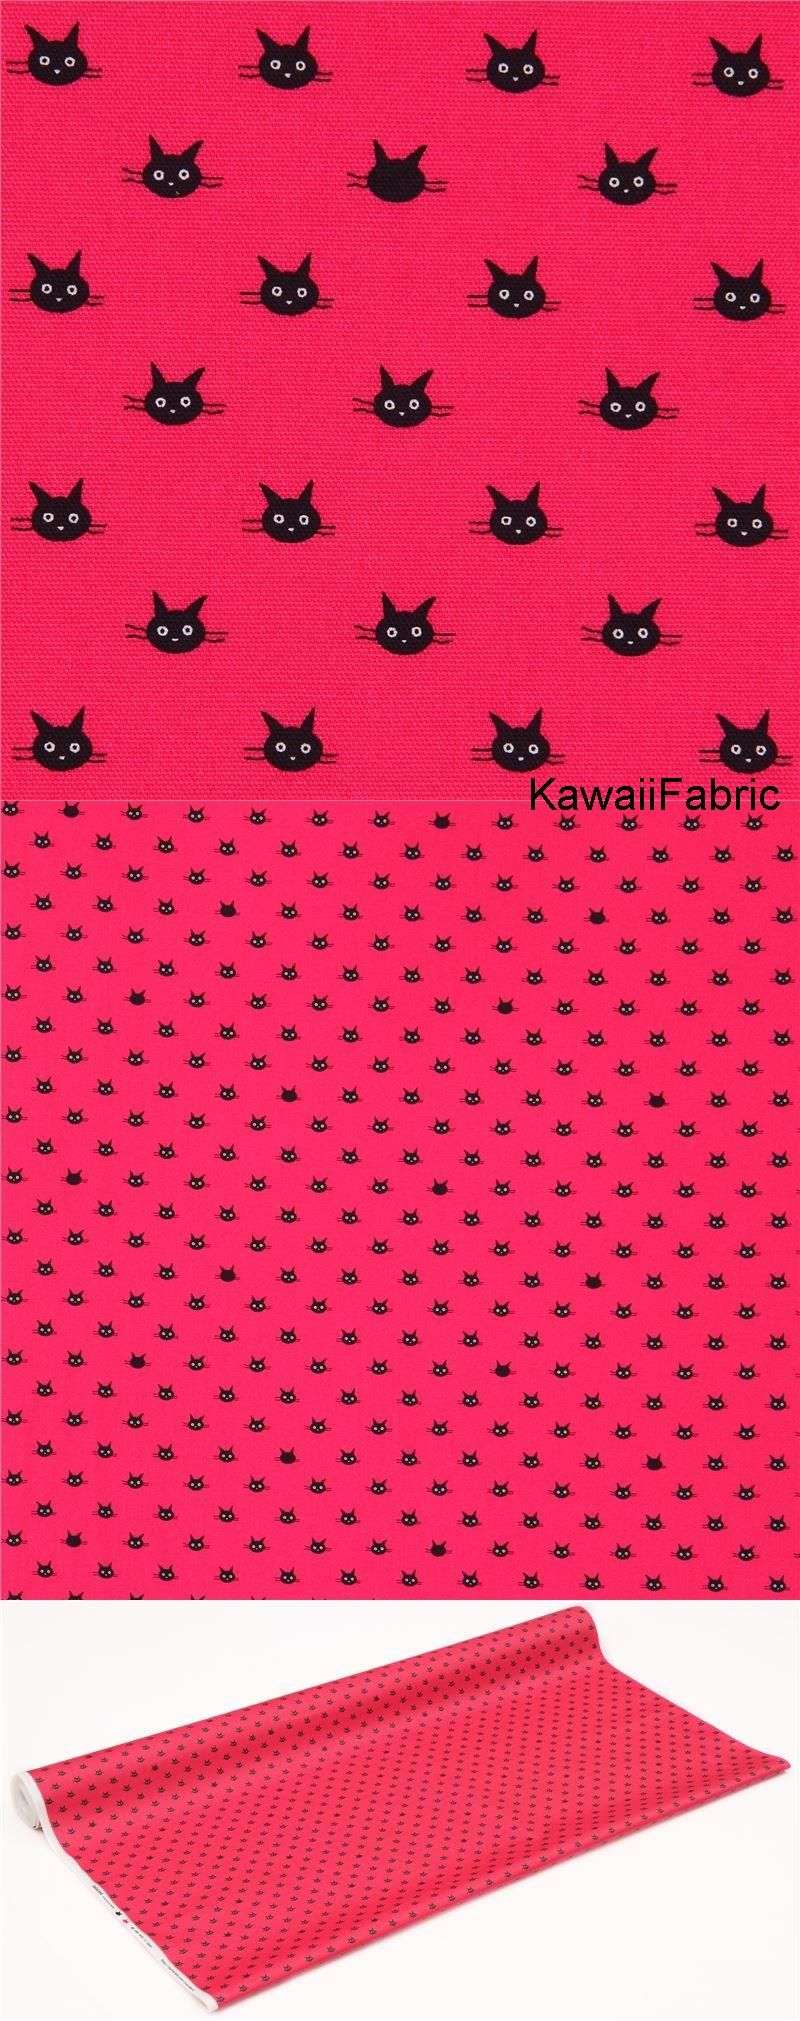 Magenta With Small Black Cat Face Laminate Fabric From Japan | (En